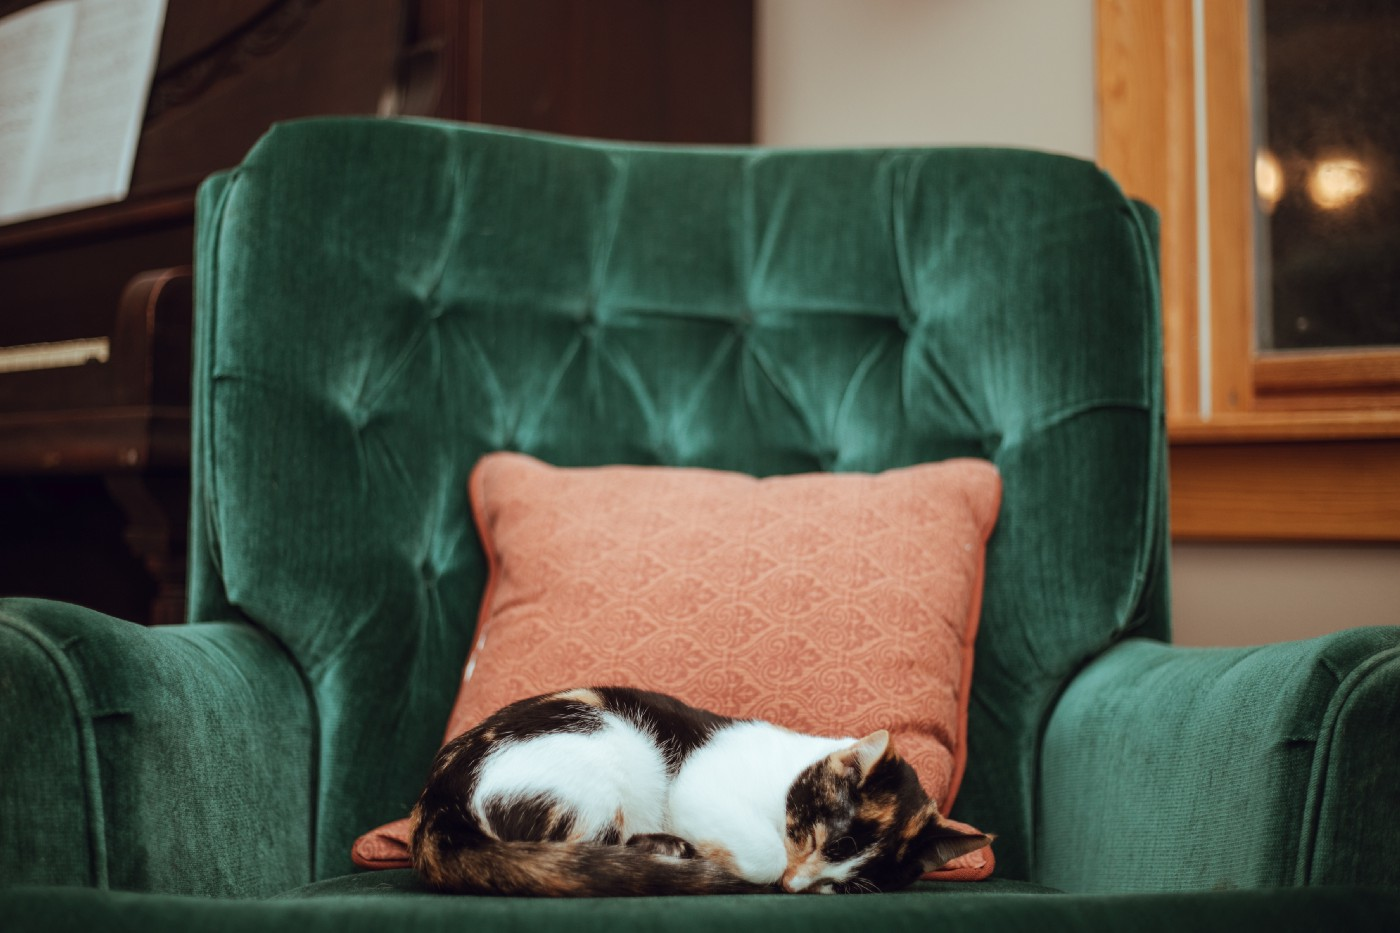 A cat, sleeping comfortably on a lounge chair.